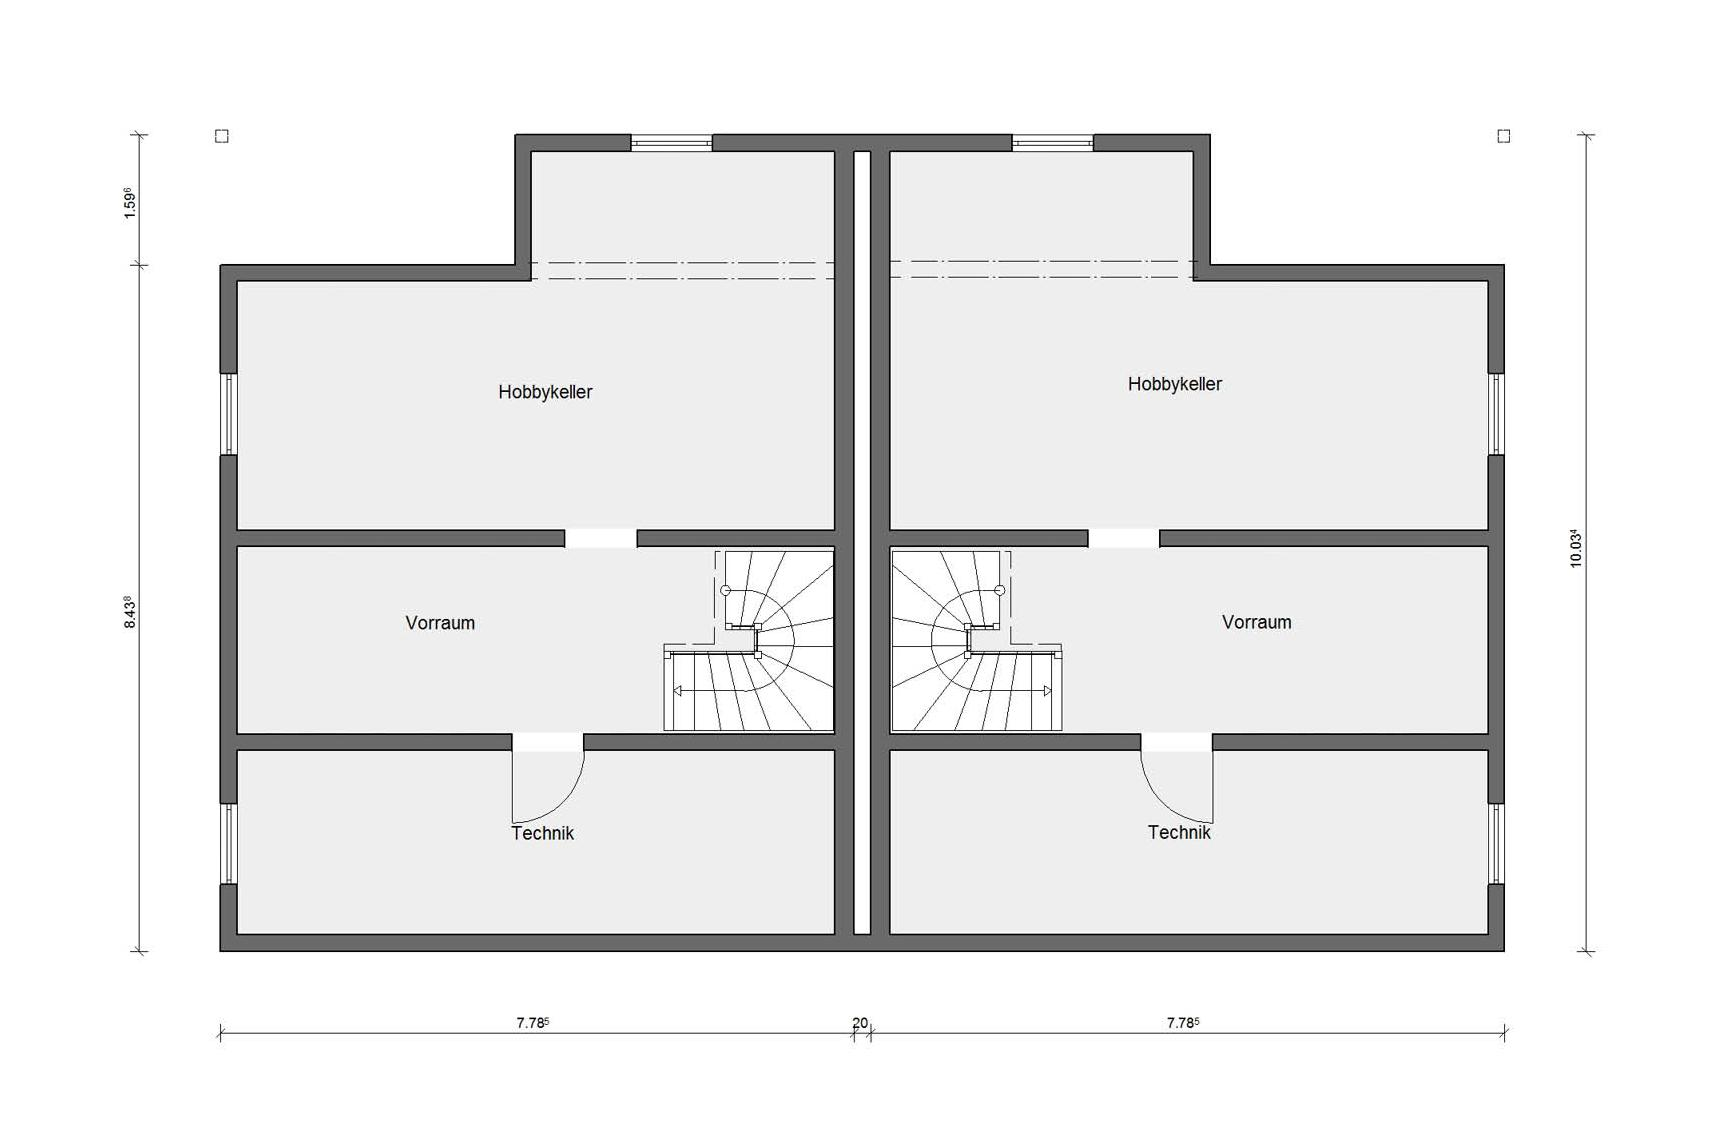 Basement floor plan semi-detached house with covered patio